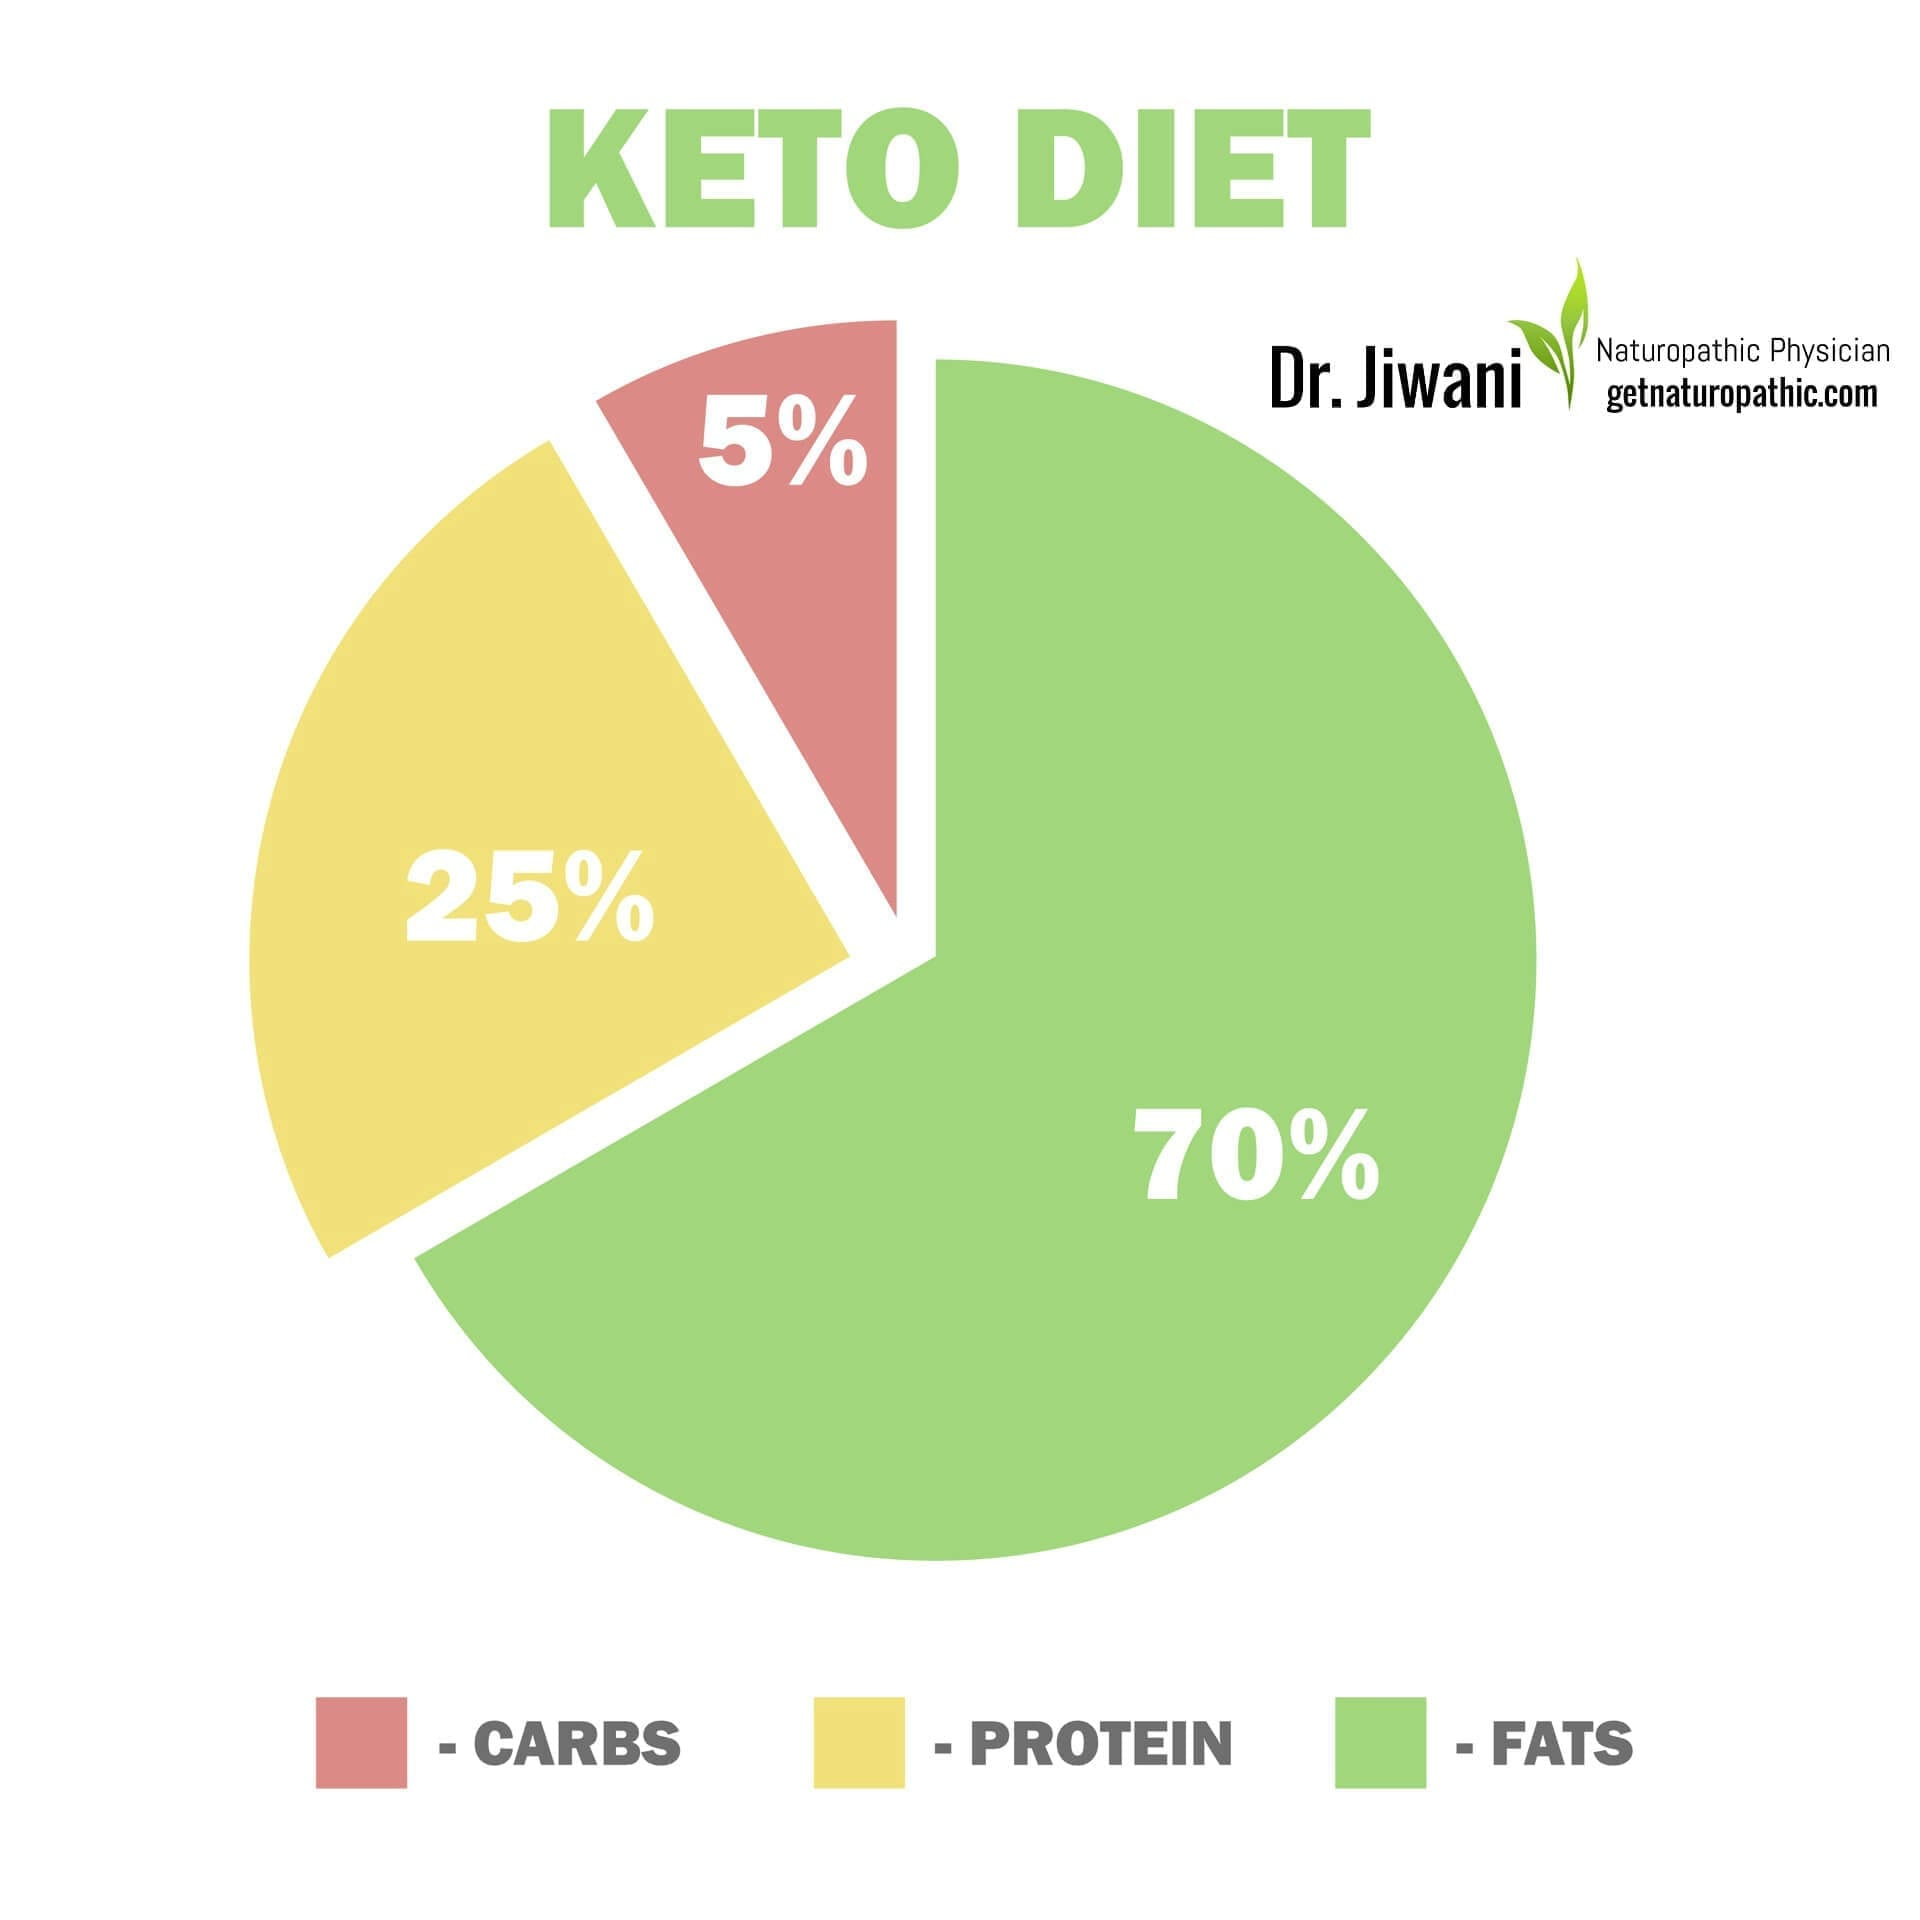 Ketogenic Diet for Newbies: The Why, When & How of this Low Carb Fat Burning Regime 70-25-5* | Dr. Jiwani's Naturopathic Nuggets Blog